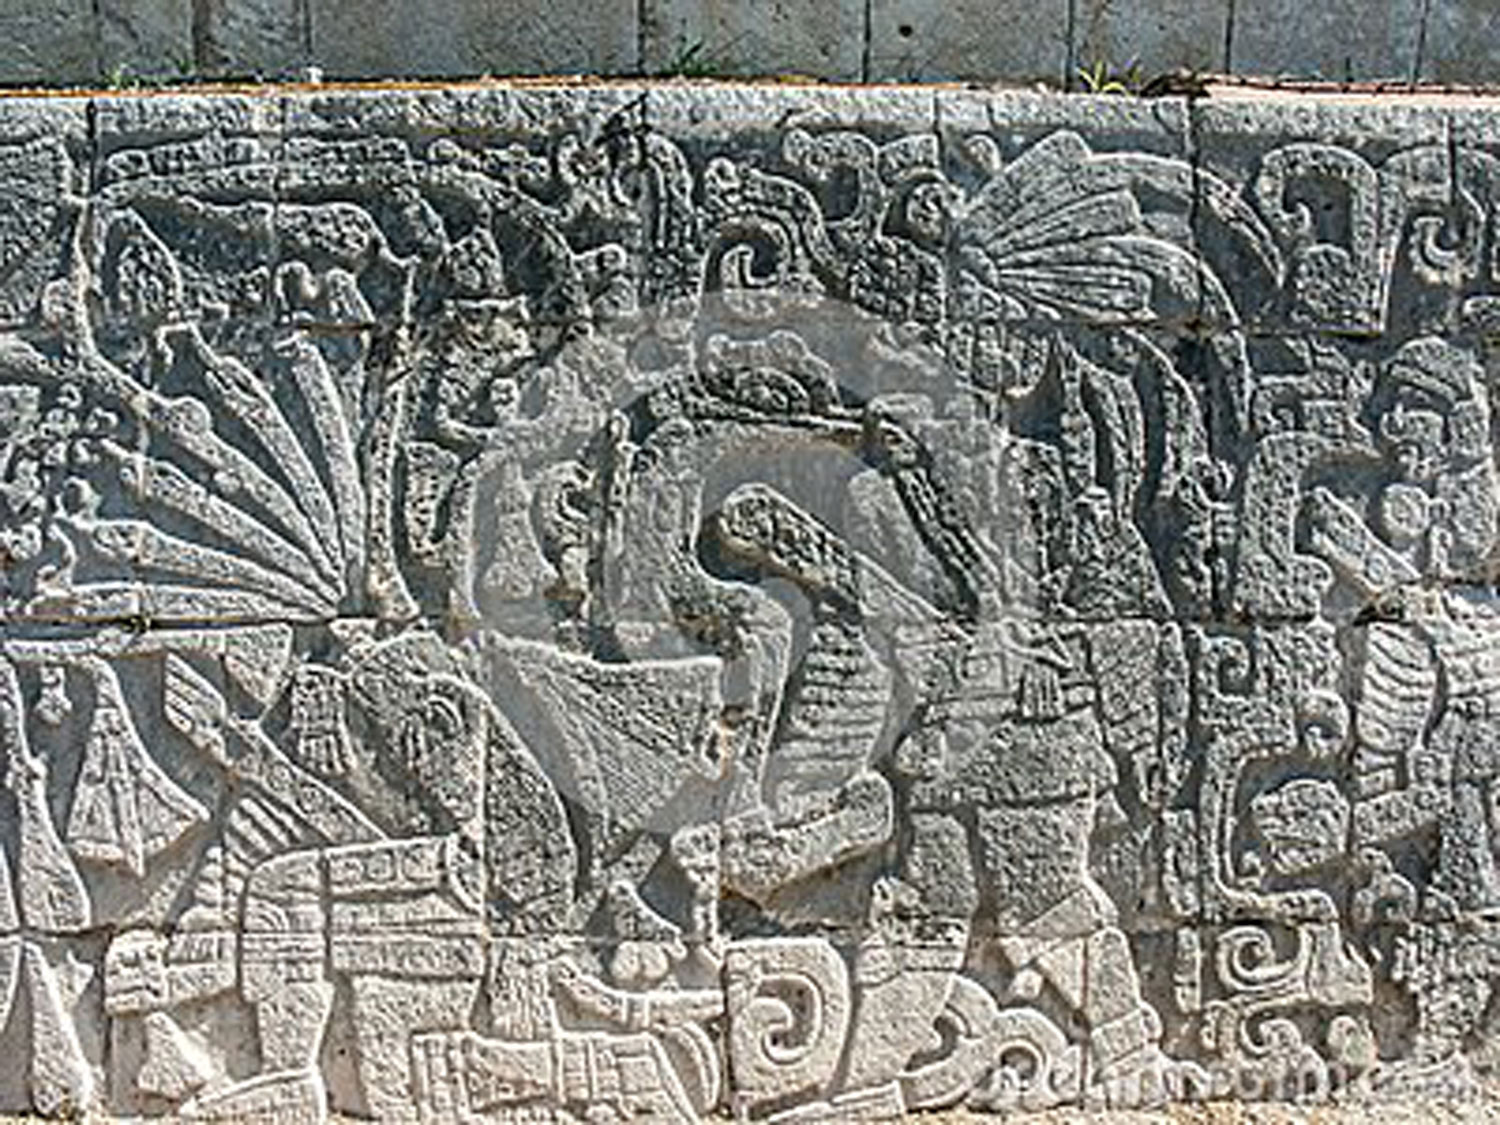 Relief (beheading-scene), Chichén Itzá ball court.